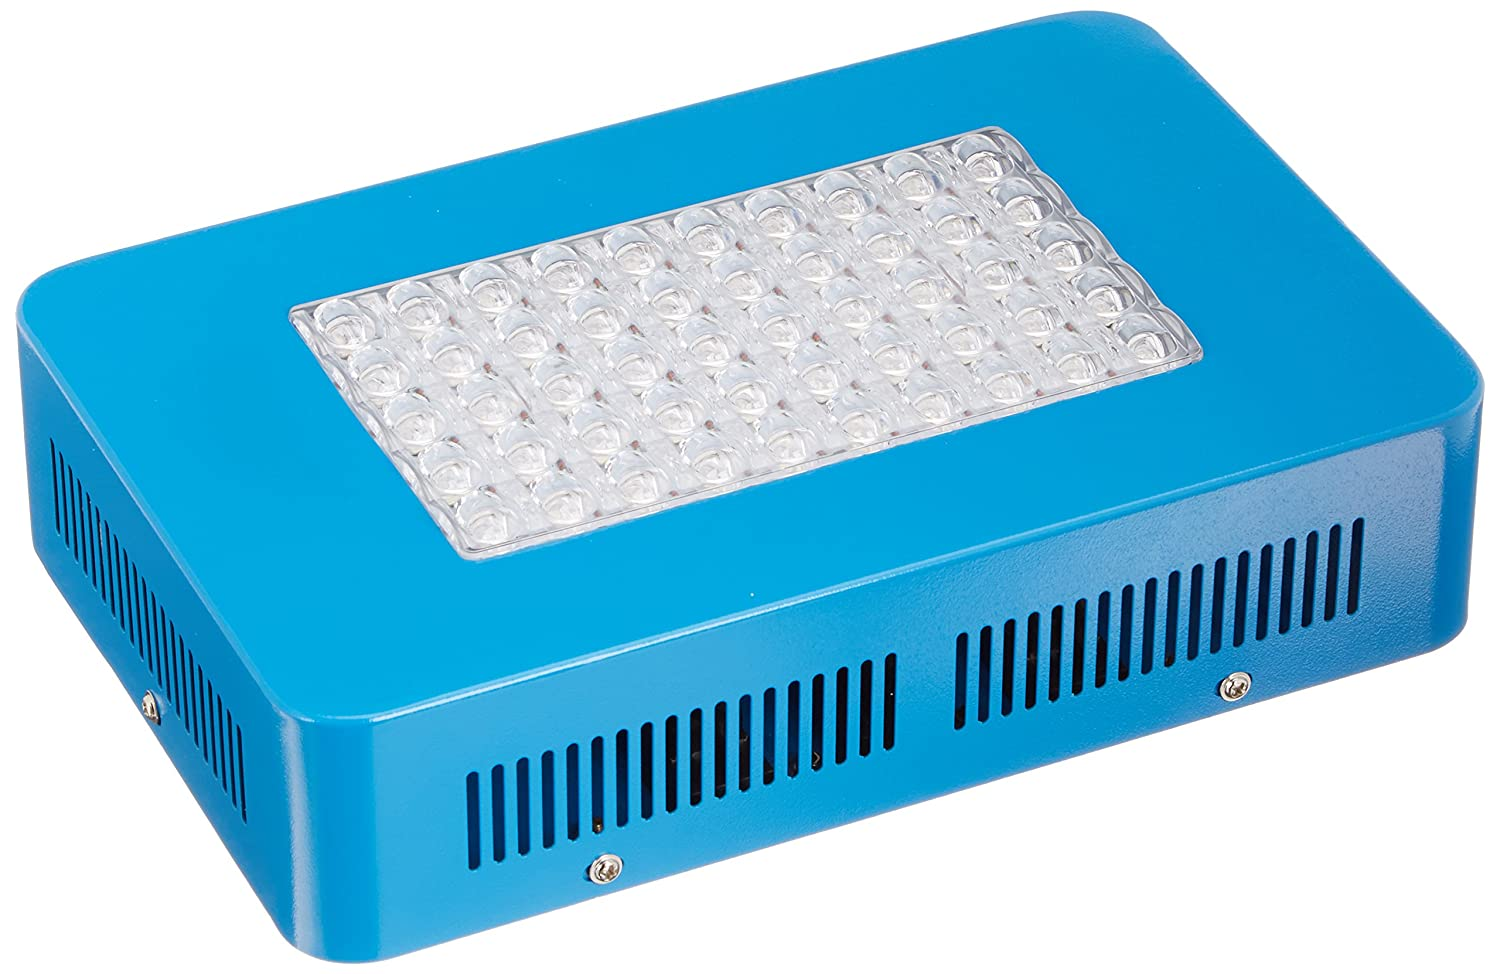 Amazon.com : Sandalwood 150W Dual Mode LED Grow Light for Hydroponic ...